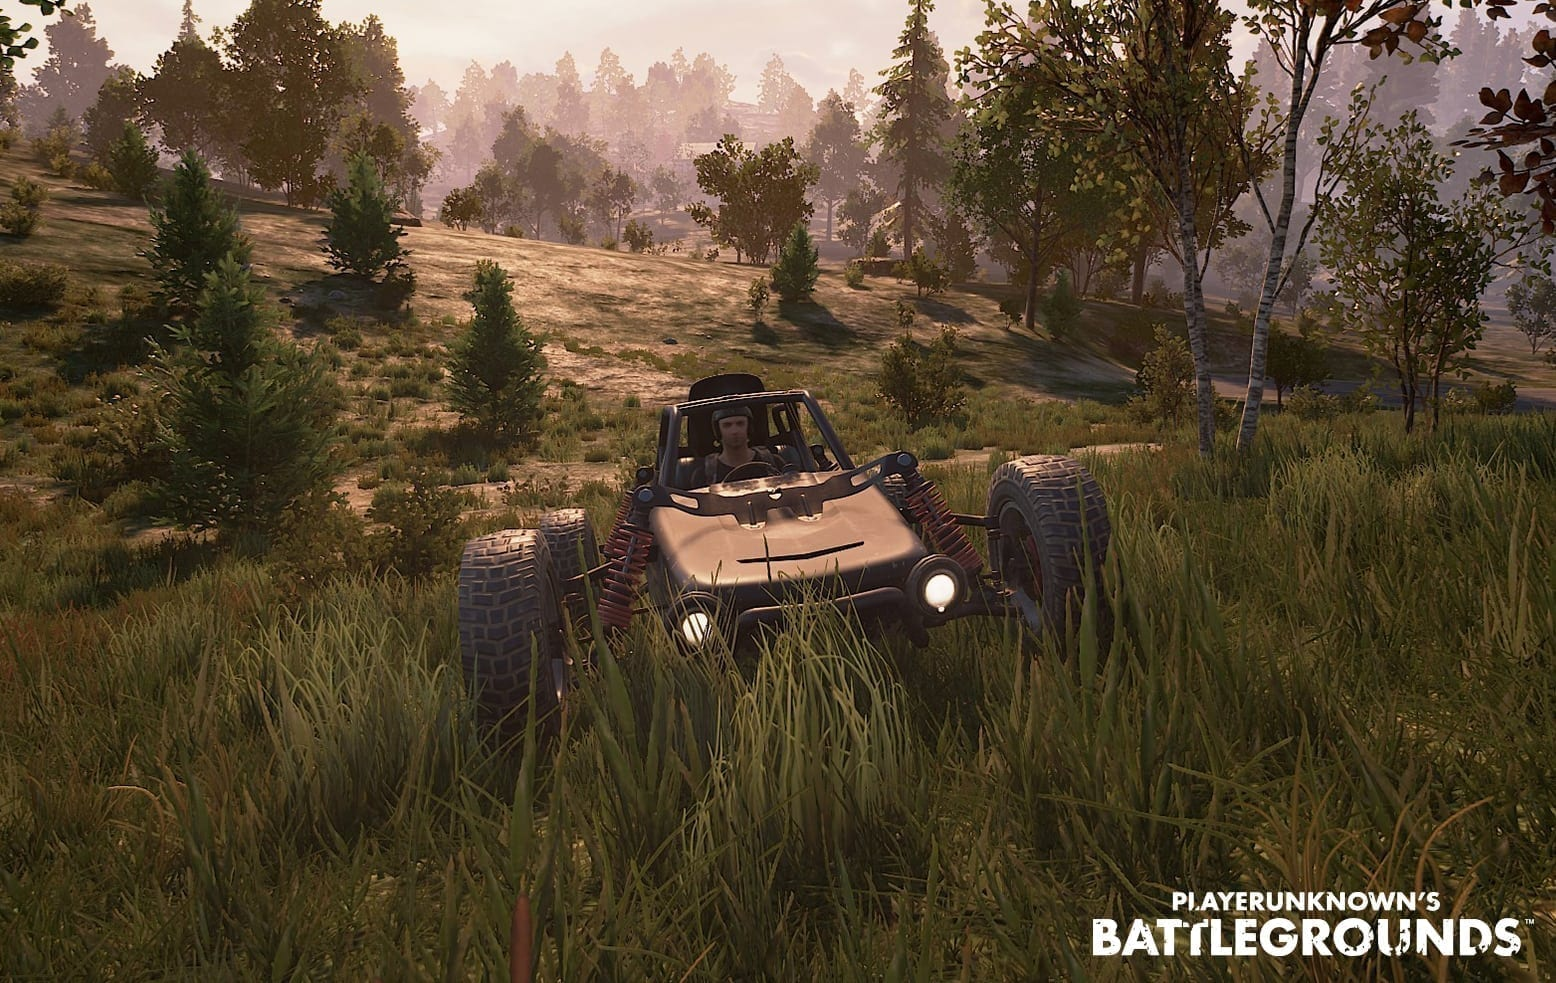 2 New Weapons Coming To Playerunknown S Battlegrounds: Playerunknown's Battlegrounds